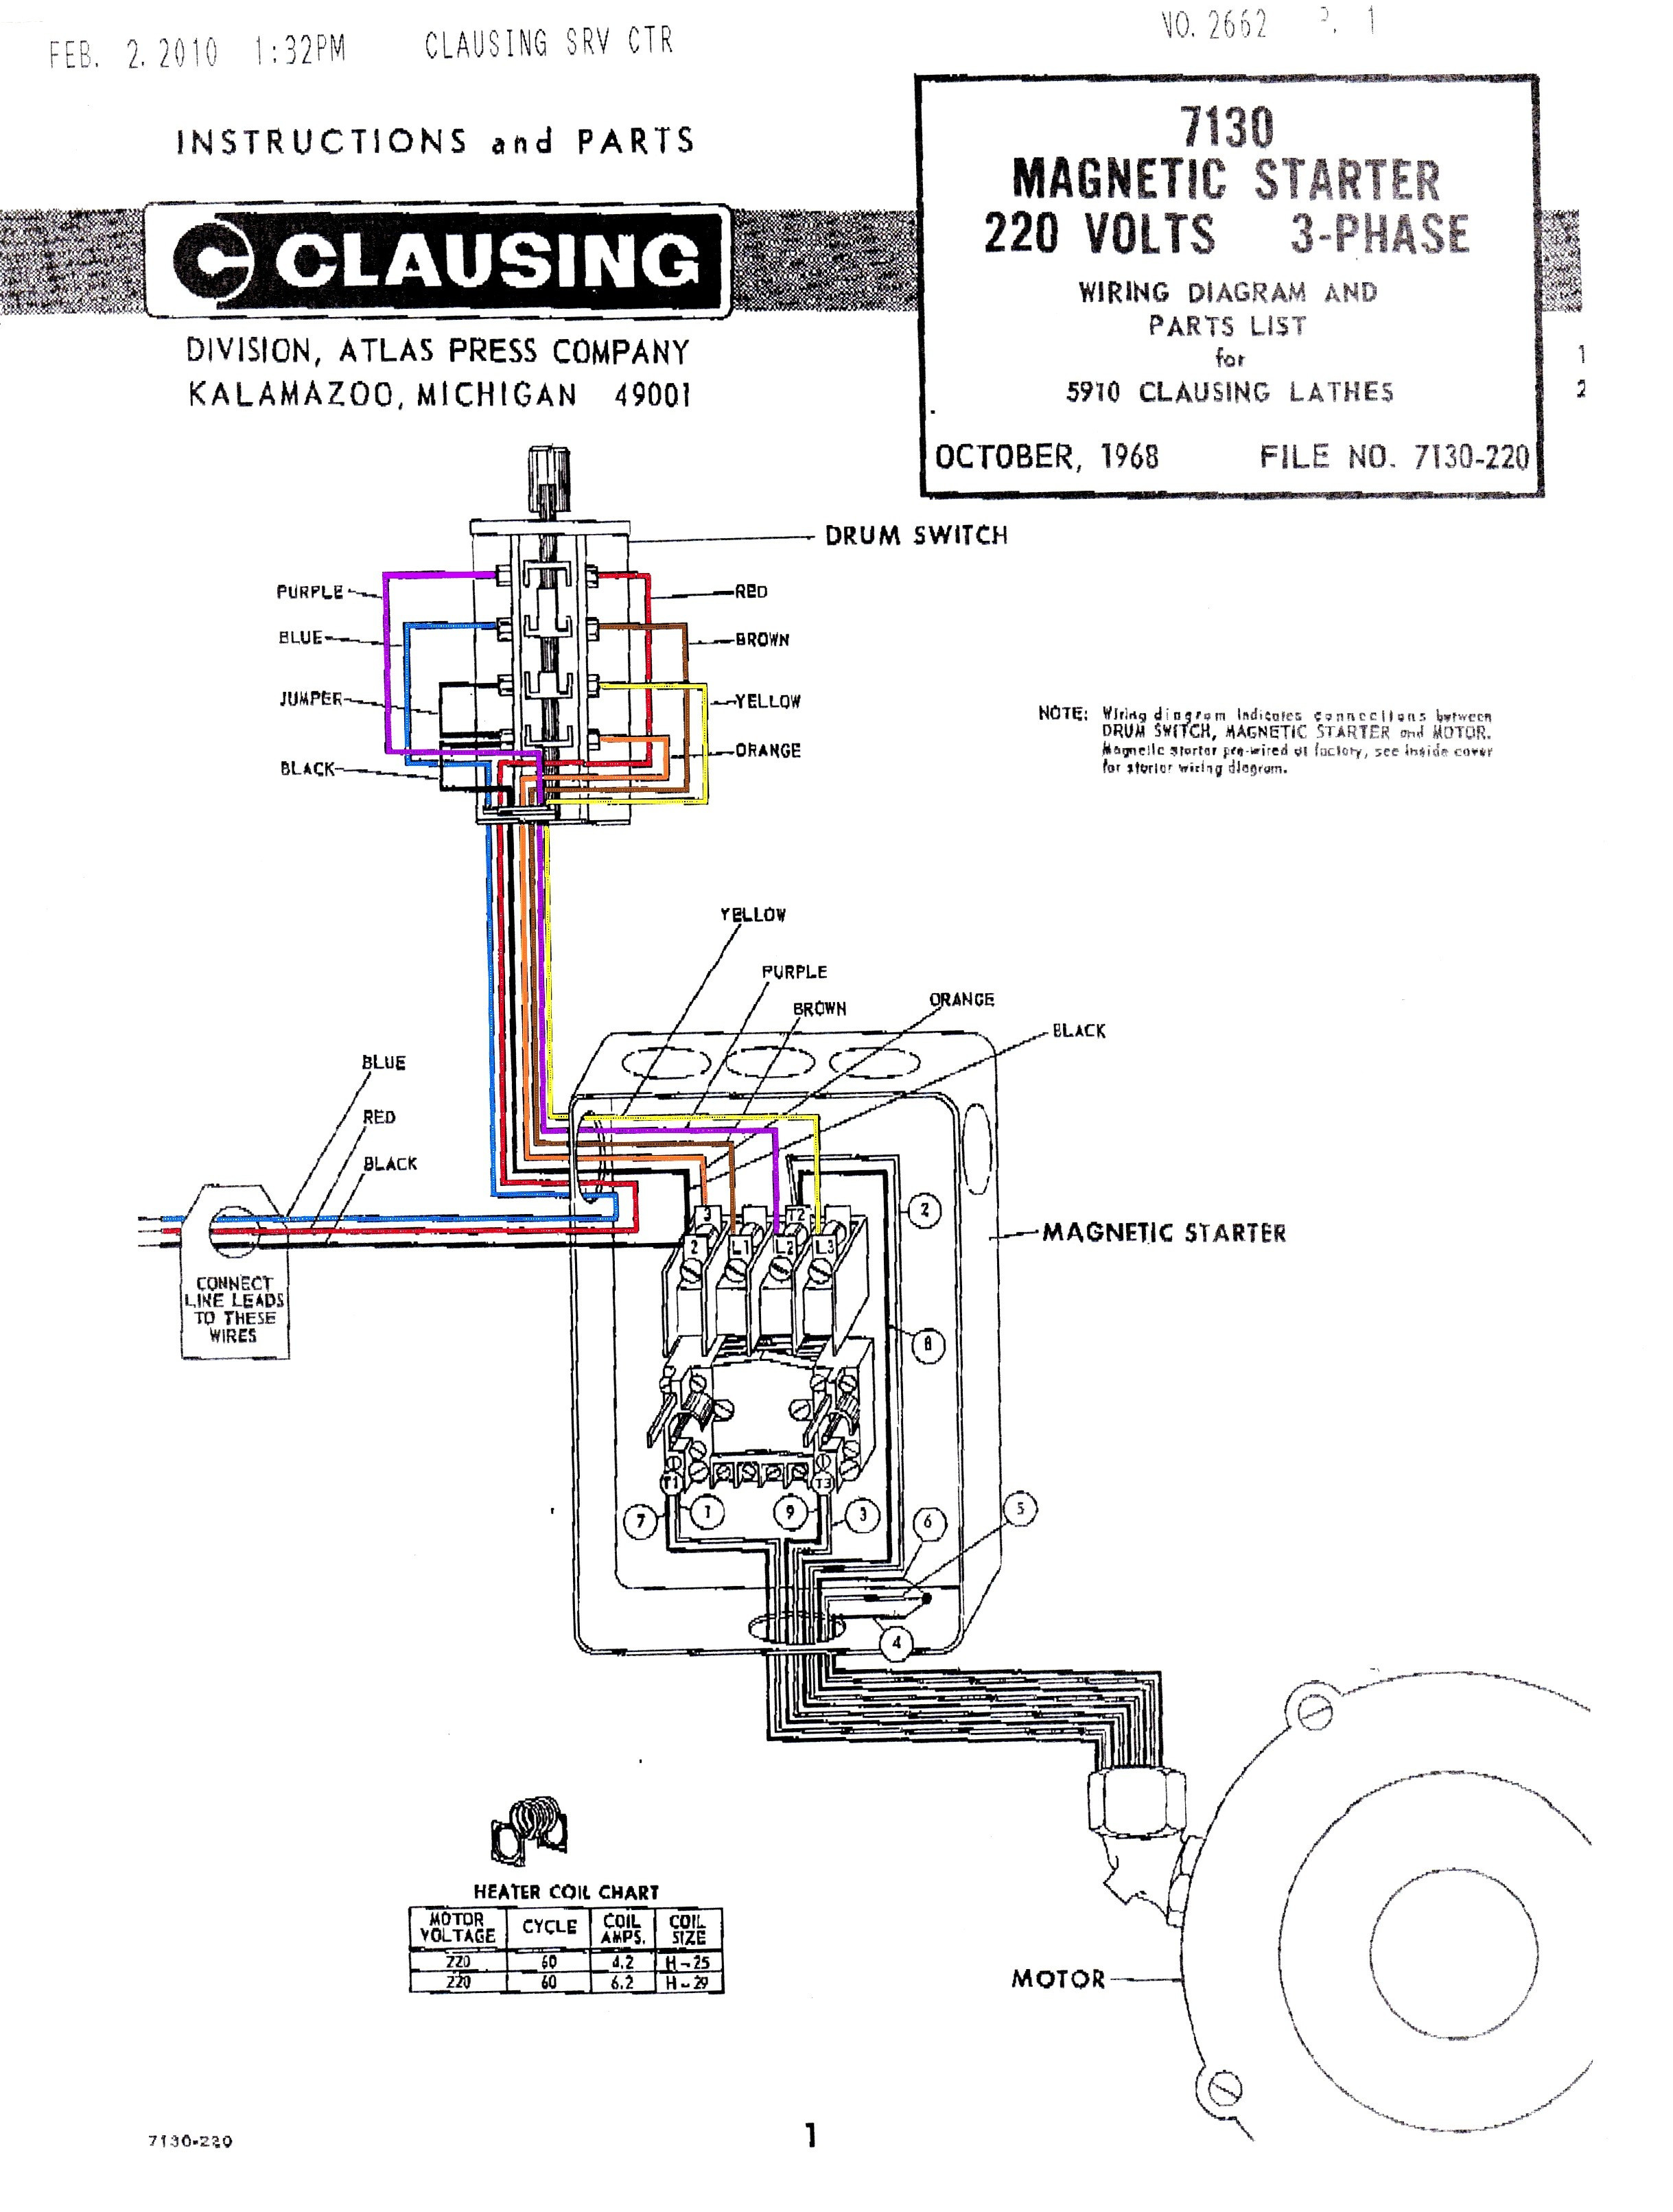 srv wiring diagram wiring diagram srv wiring diagram electrical wiring diagram3 phase switch wiring diagram free [ 2438 x 3223 Pixel ]